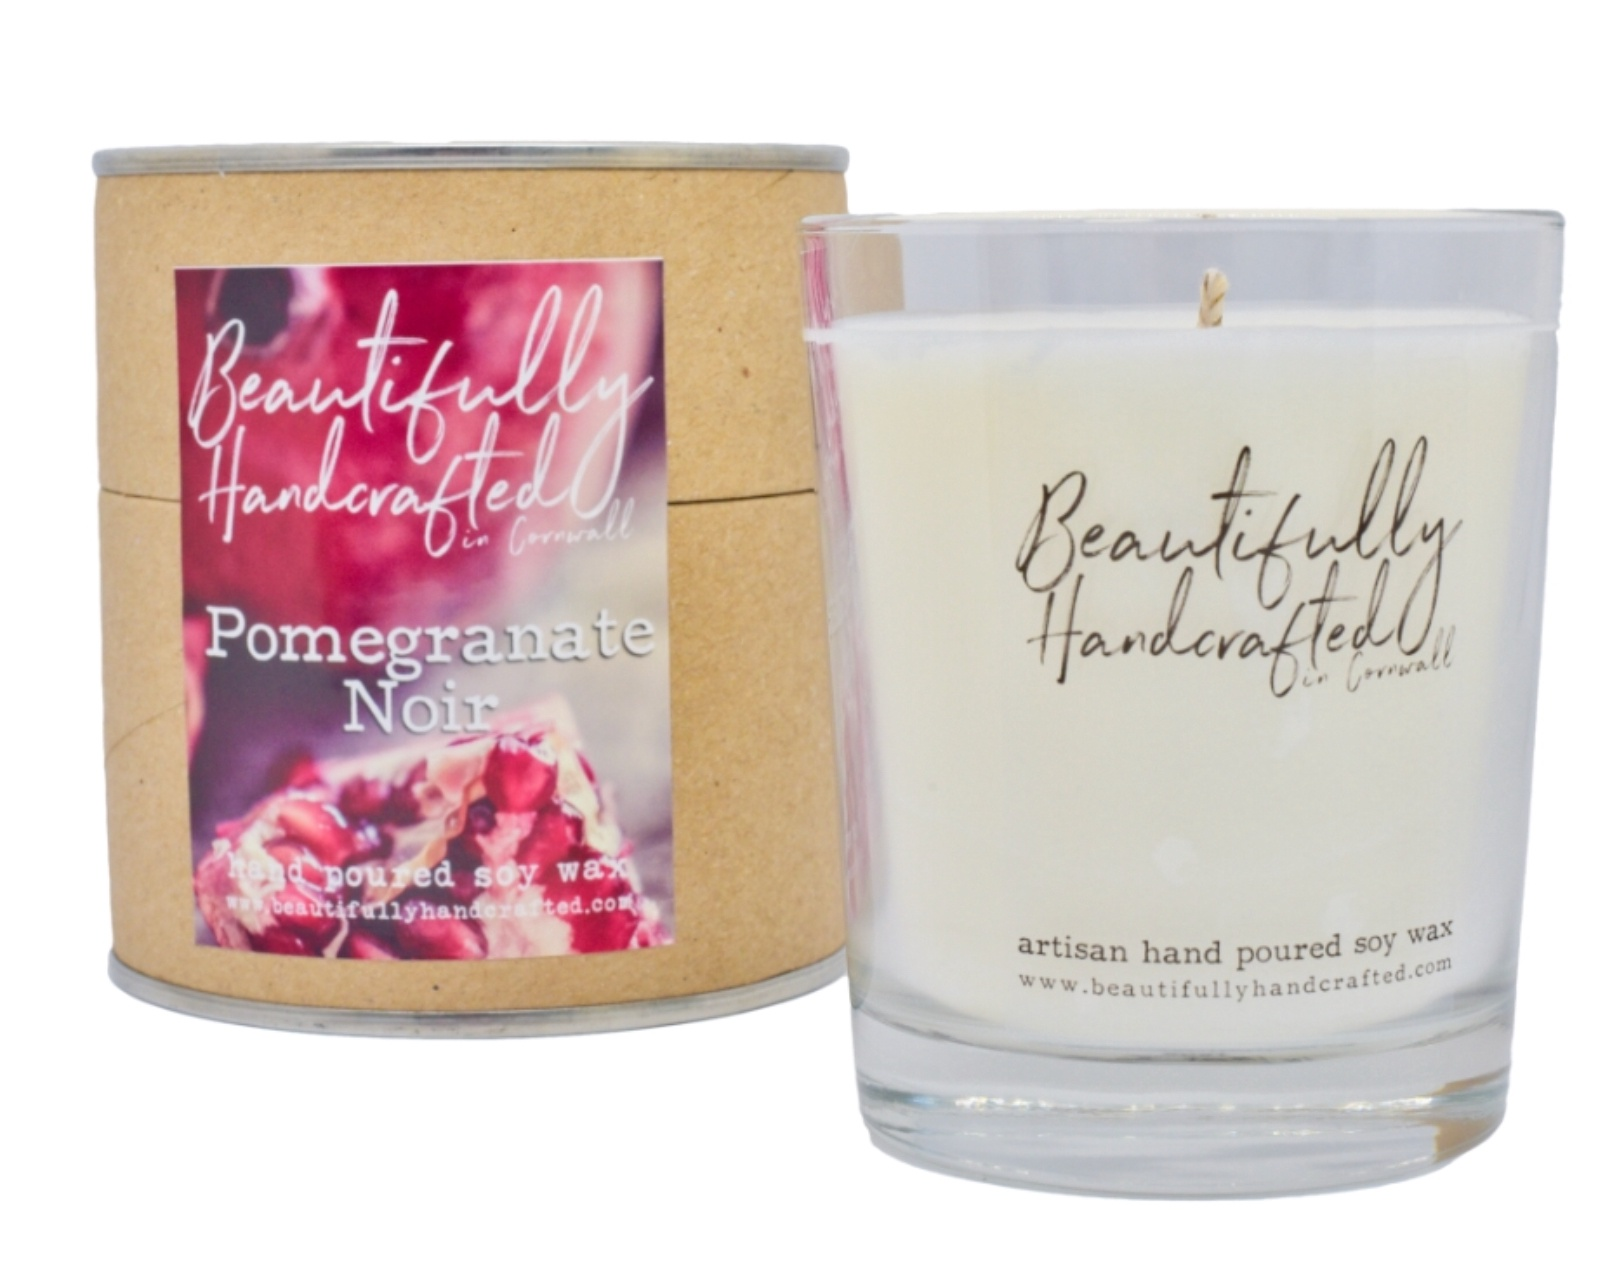 Beautifully Hand Crafted Ponegranate Noir Jar Candle